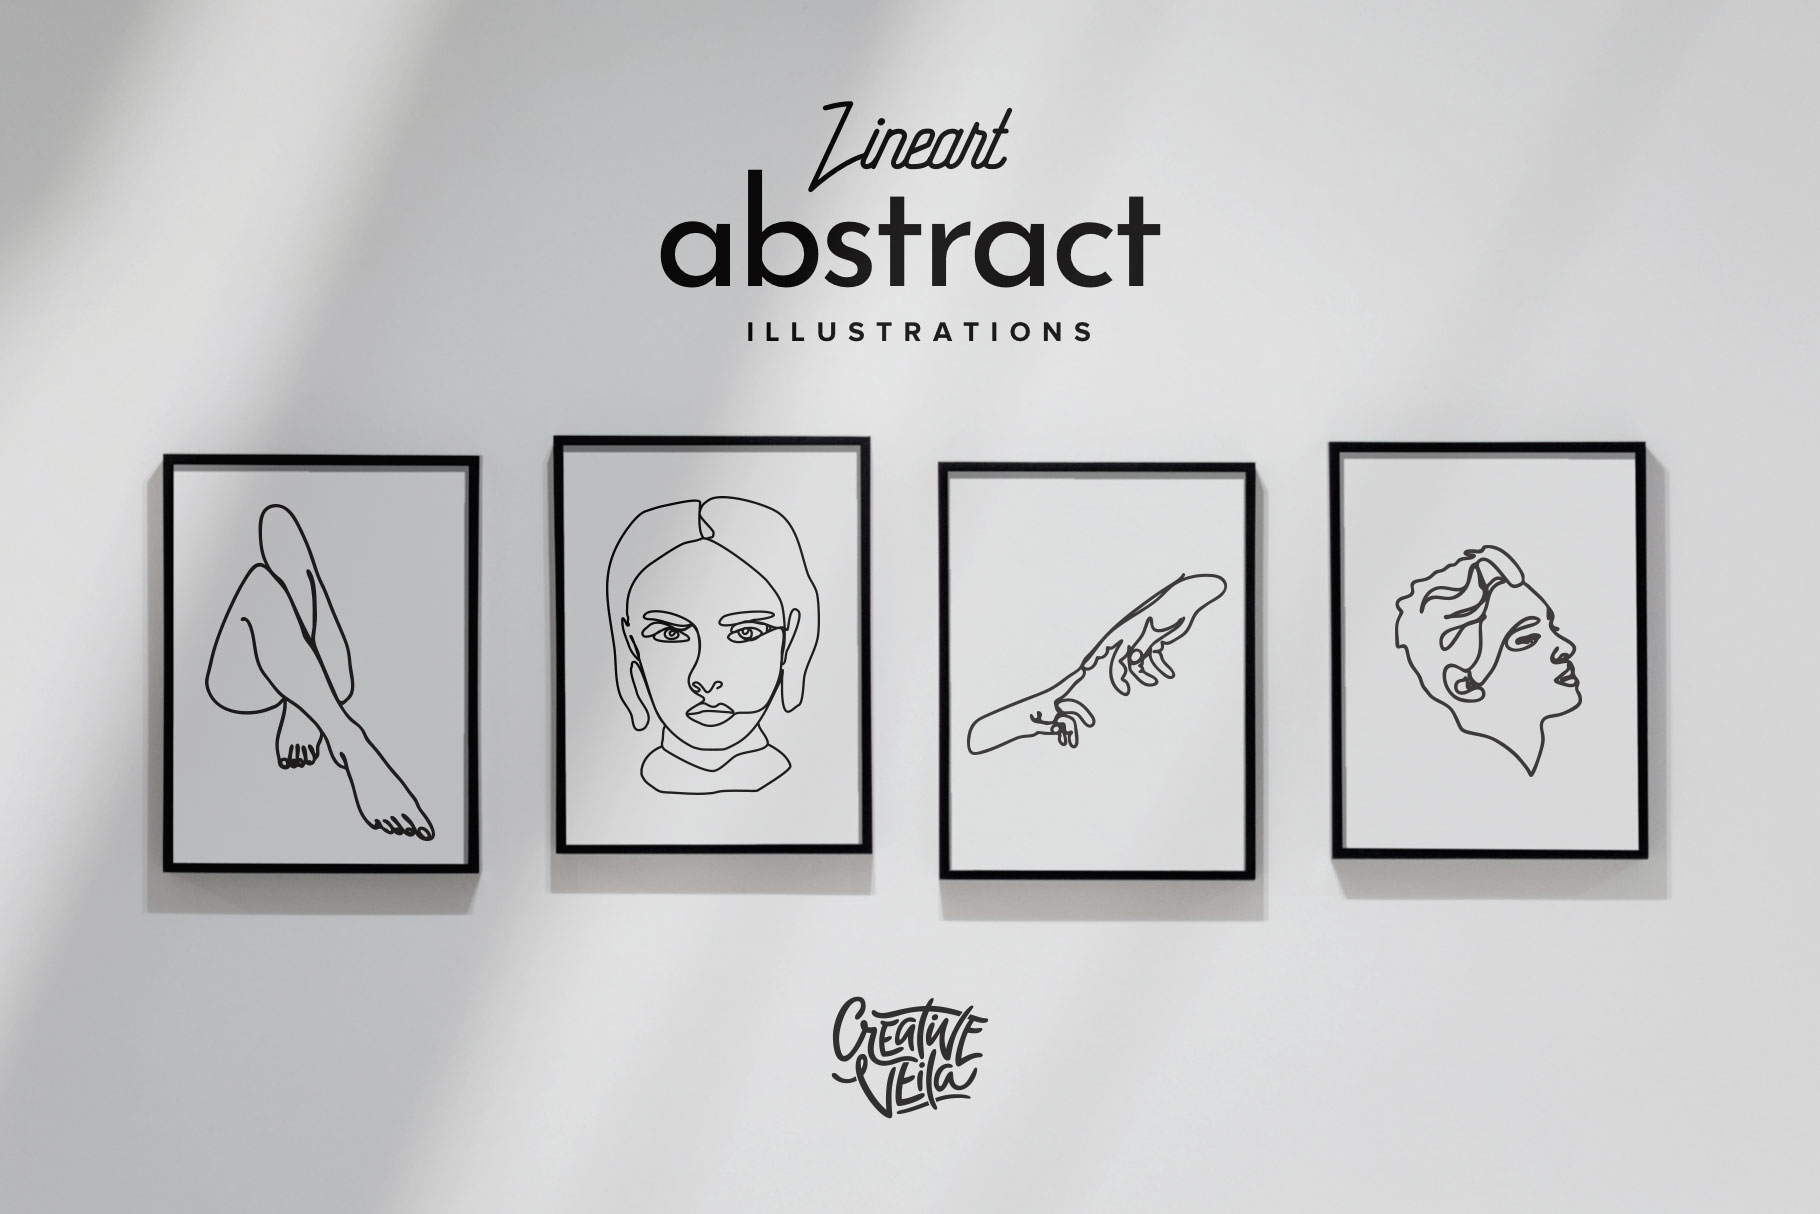 Free Lineart Abstract Vector Illustrations.jpg